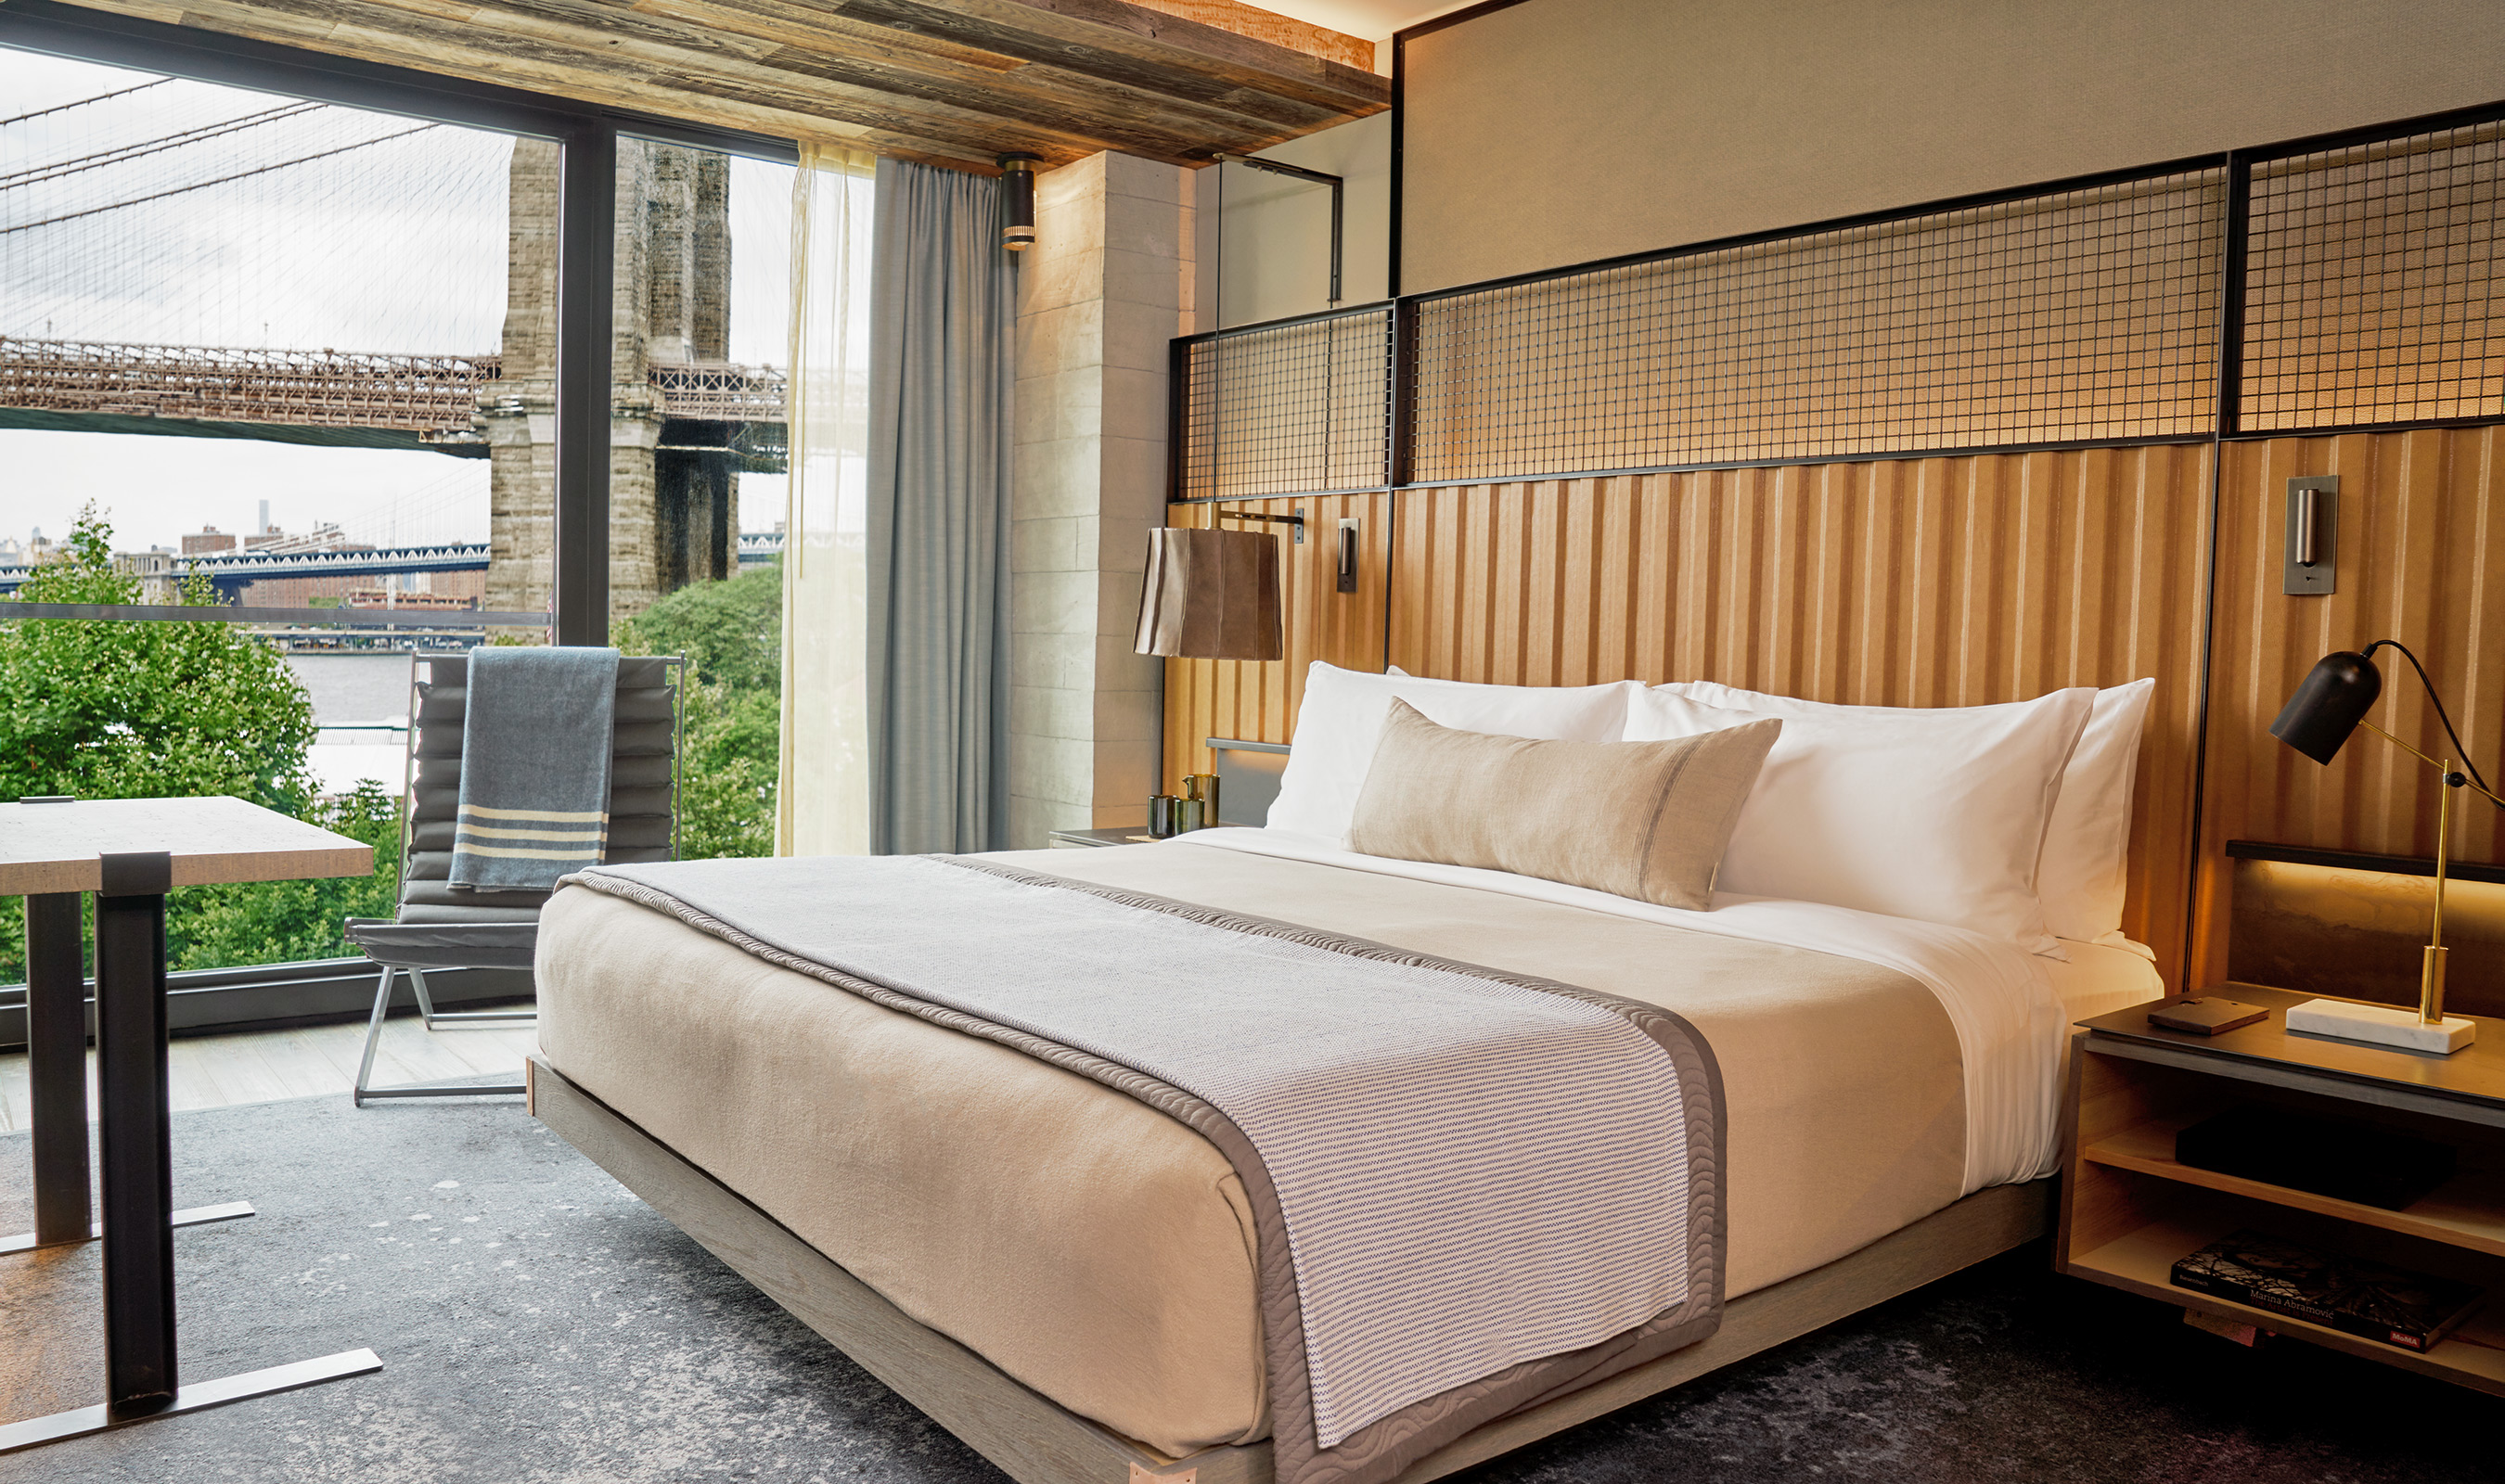 L-85 wire mesh is used as decorative furniture accent above the beds in the 1 Hotel Brooklyn Bridge rooms.